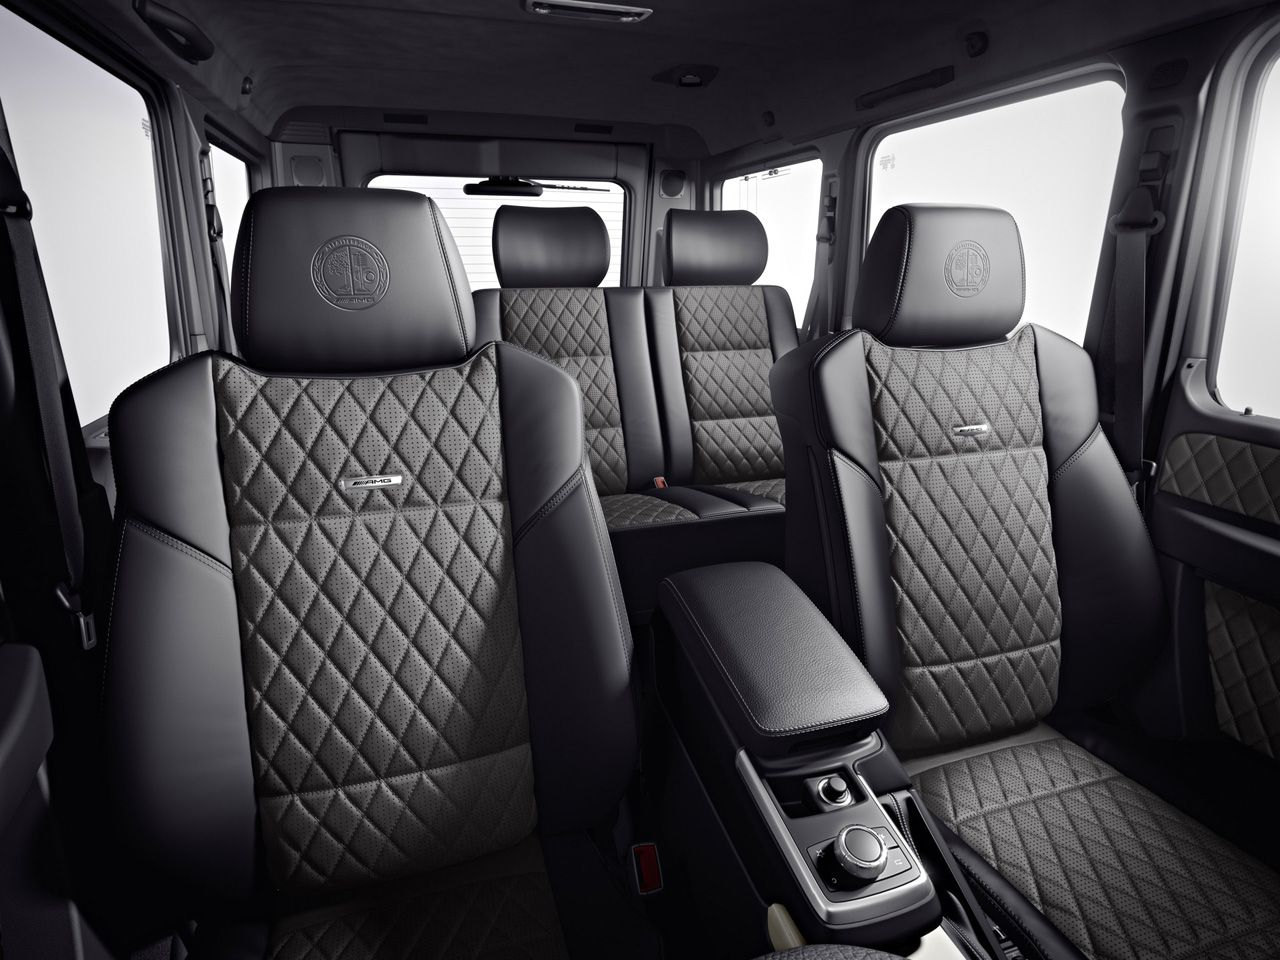 2012 mercedes benz g class amg cars other vehicles pinterest mercedes benz benz and cars. Black Bedroom Furniture Sets. Home Design Ideas